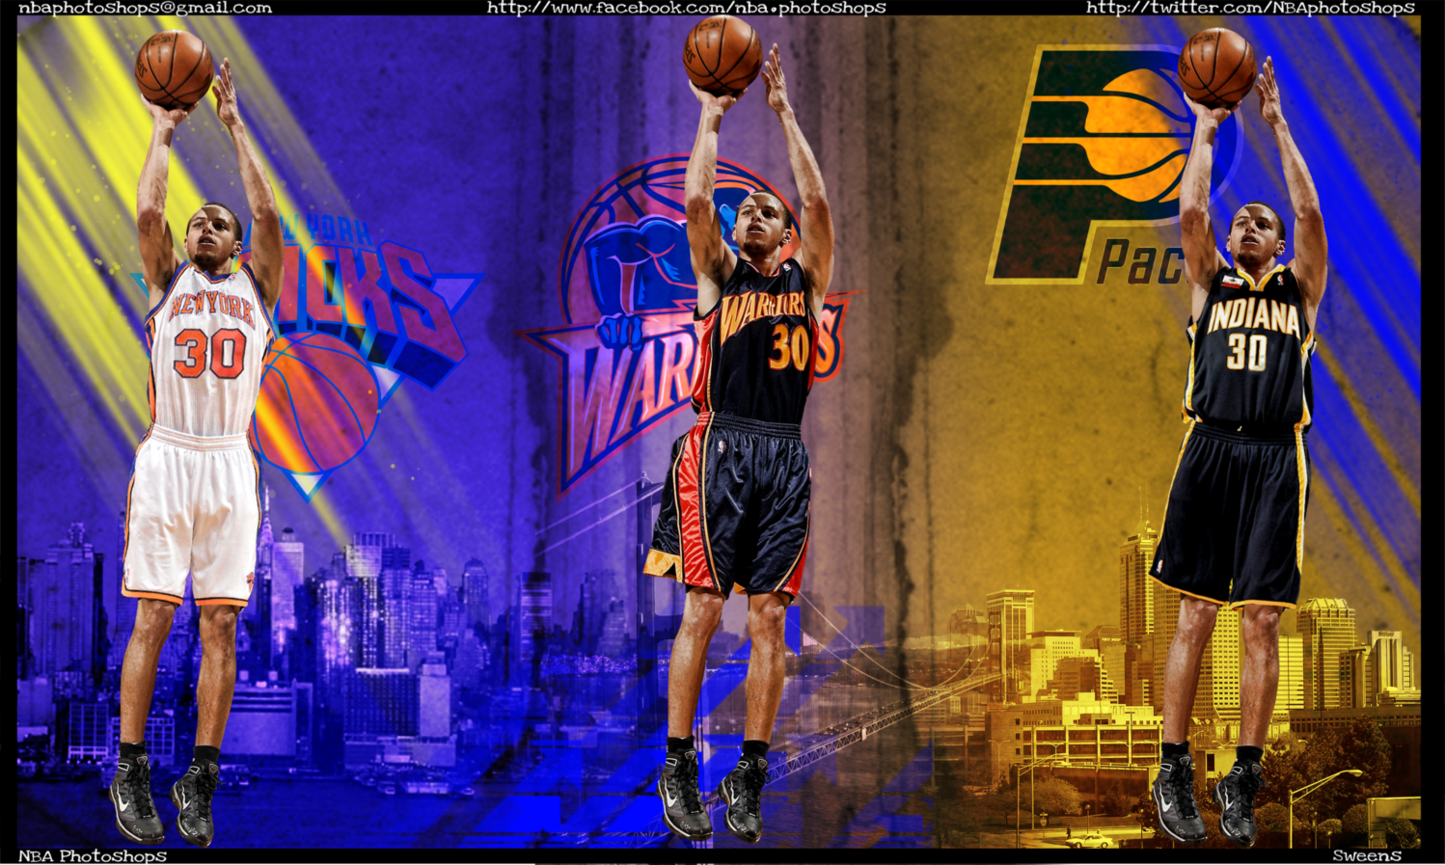 Stephen Curry Dunk Wallpaper - WallpaperSafari